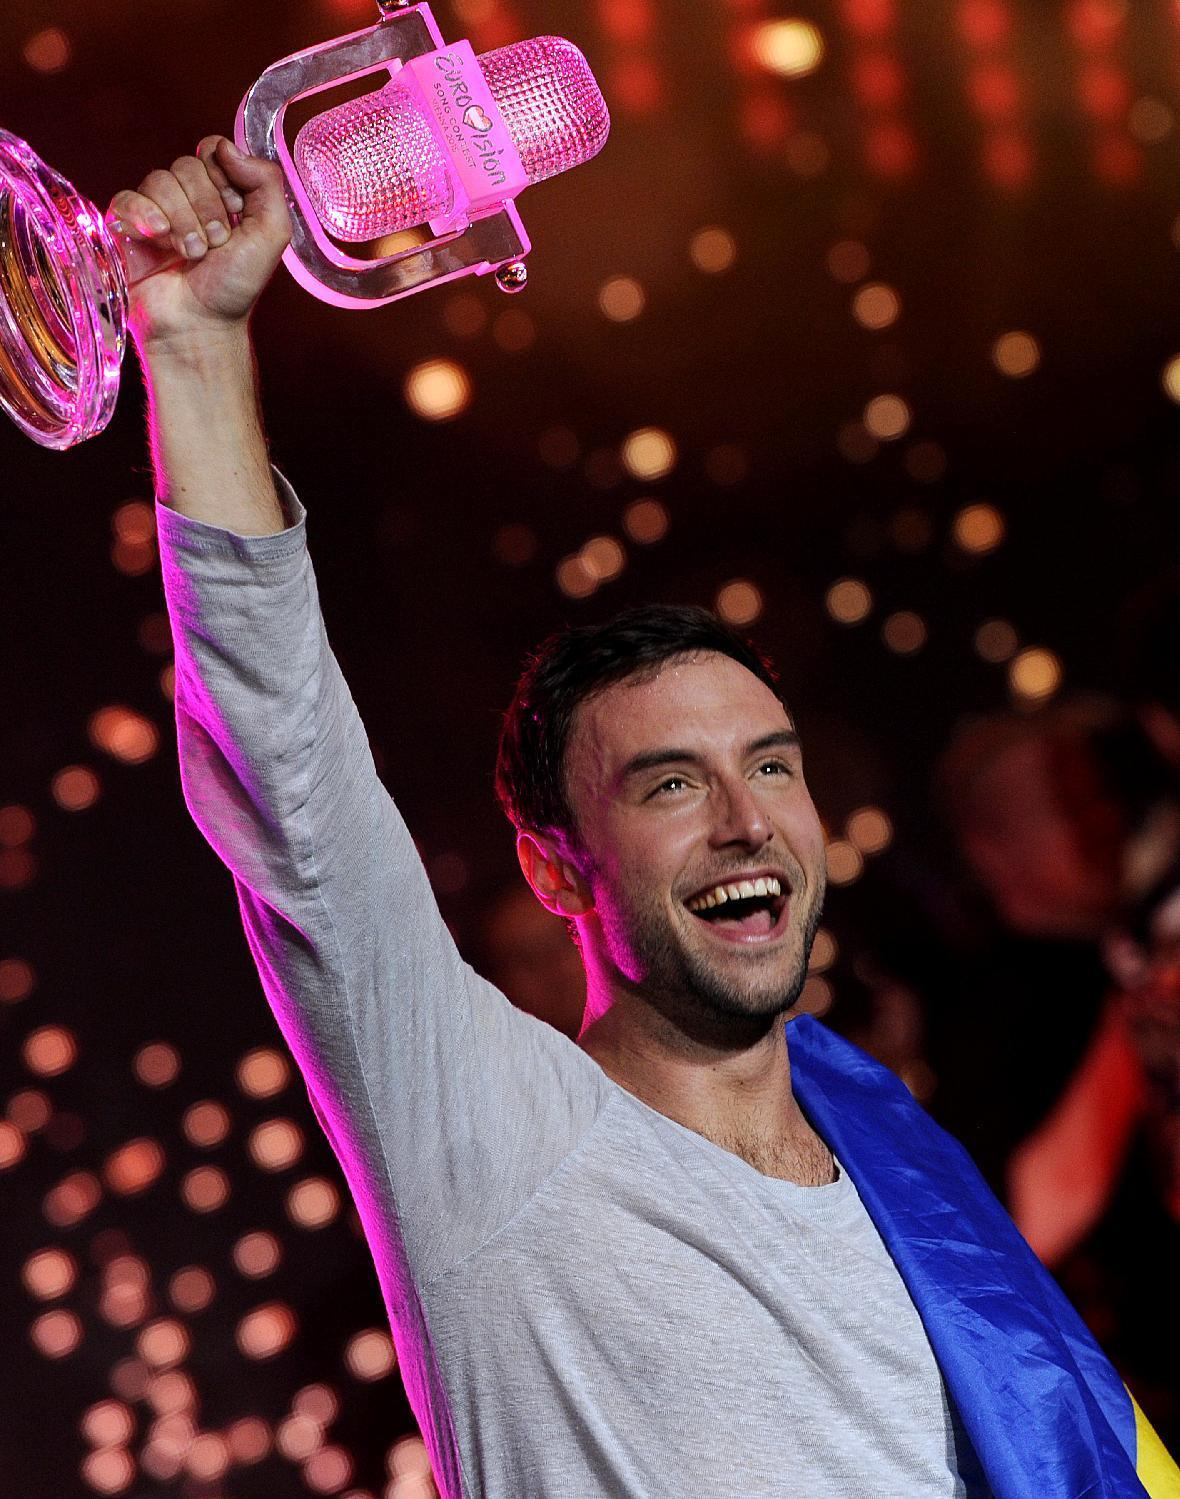 Sweden pips Russia in Eurovision pop fest nail-biter